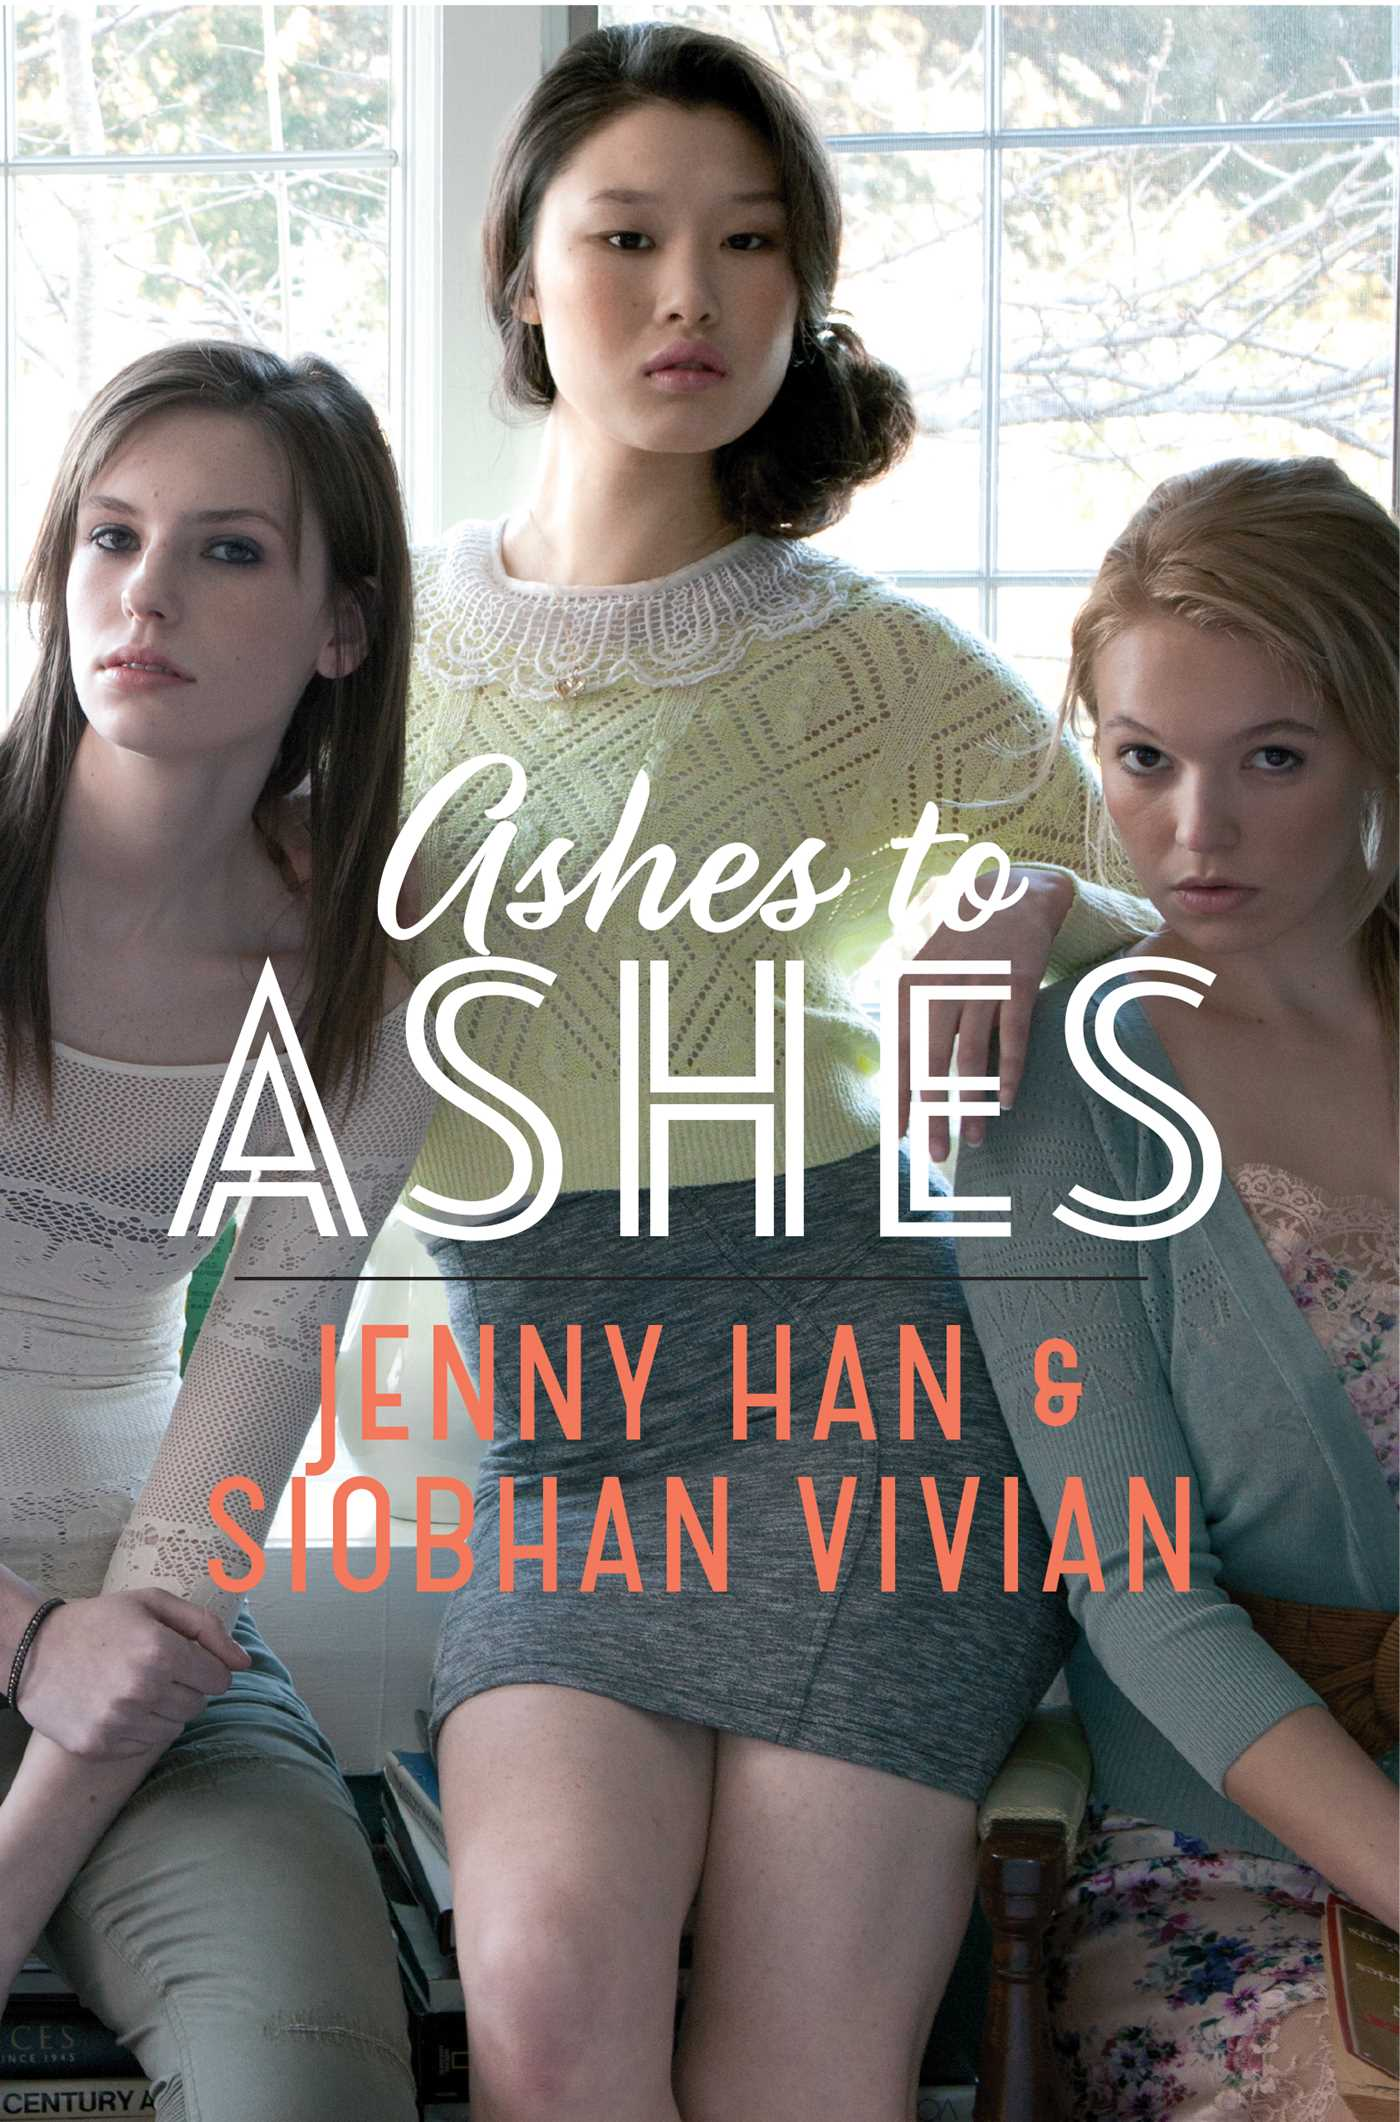 Ashes-to-ashes-9781442440838_hr